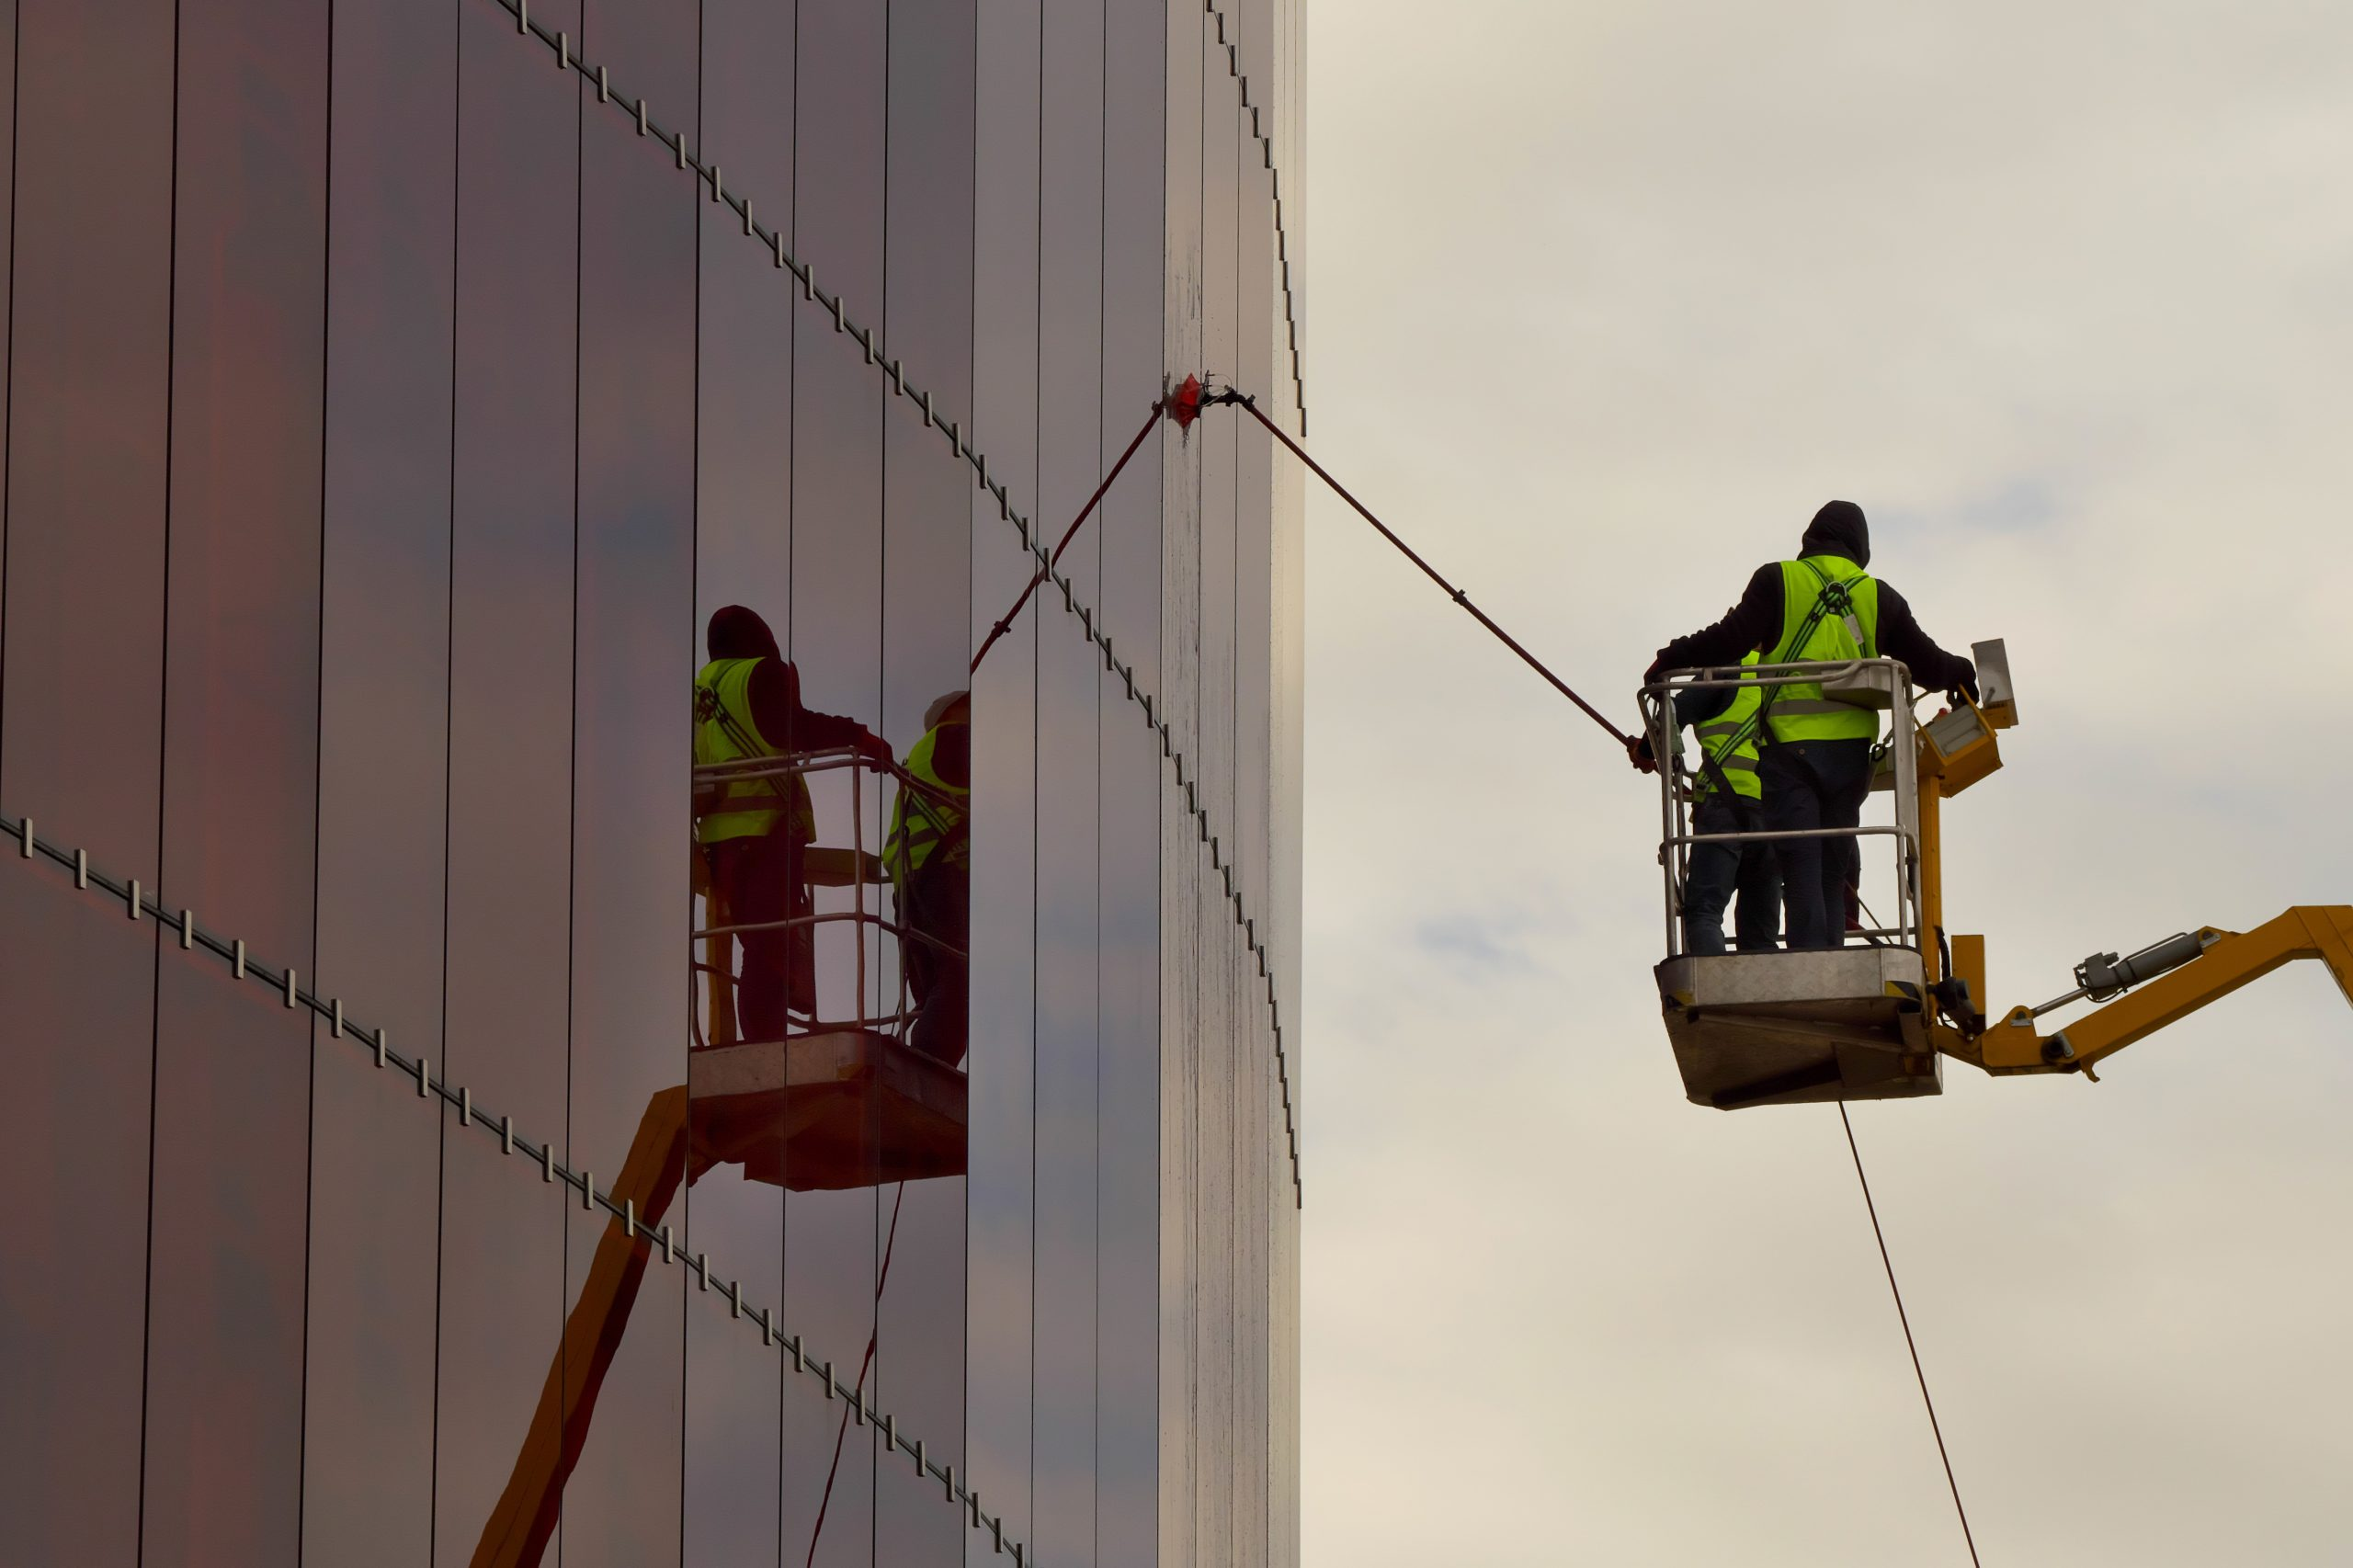 Rope Access Window Cleaning South Yorkshire   Rope Access Cleaning Services